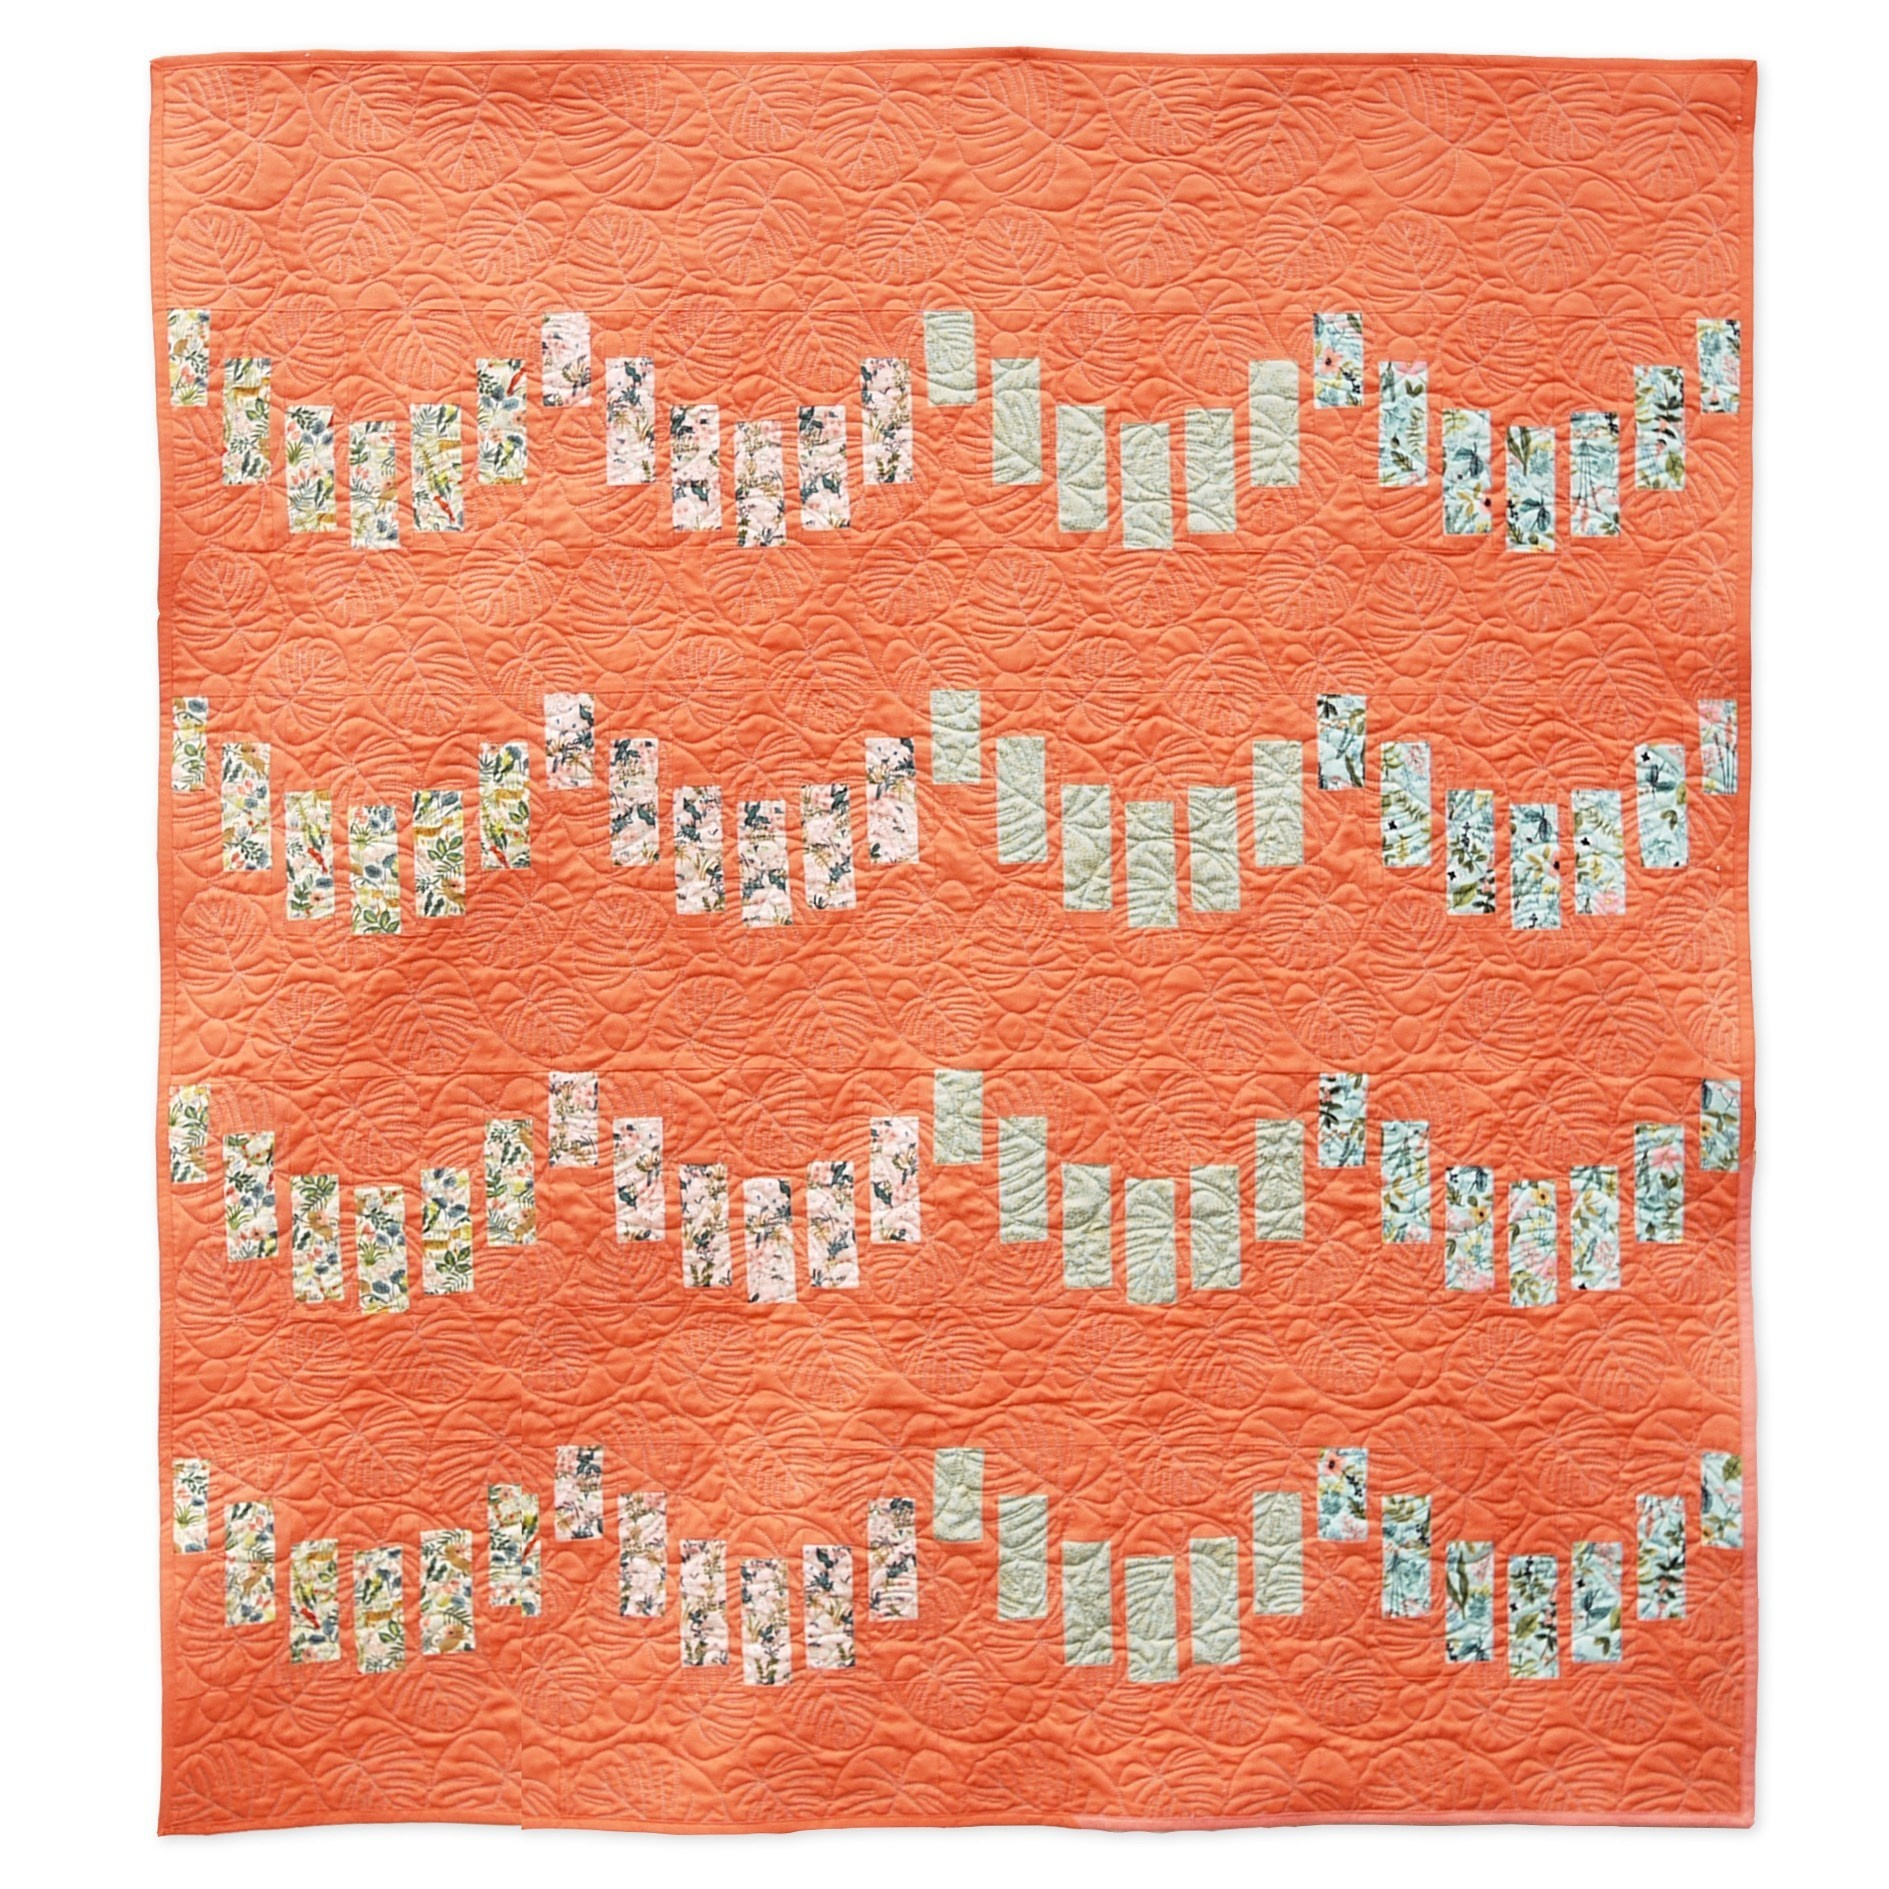 3rd Story Workshop : Striped Scallops Quilt Pattern